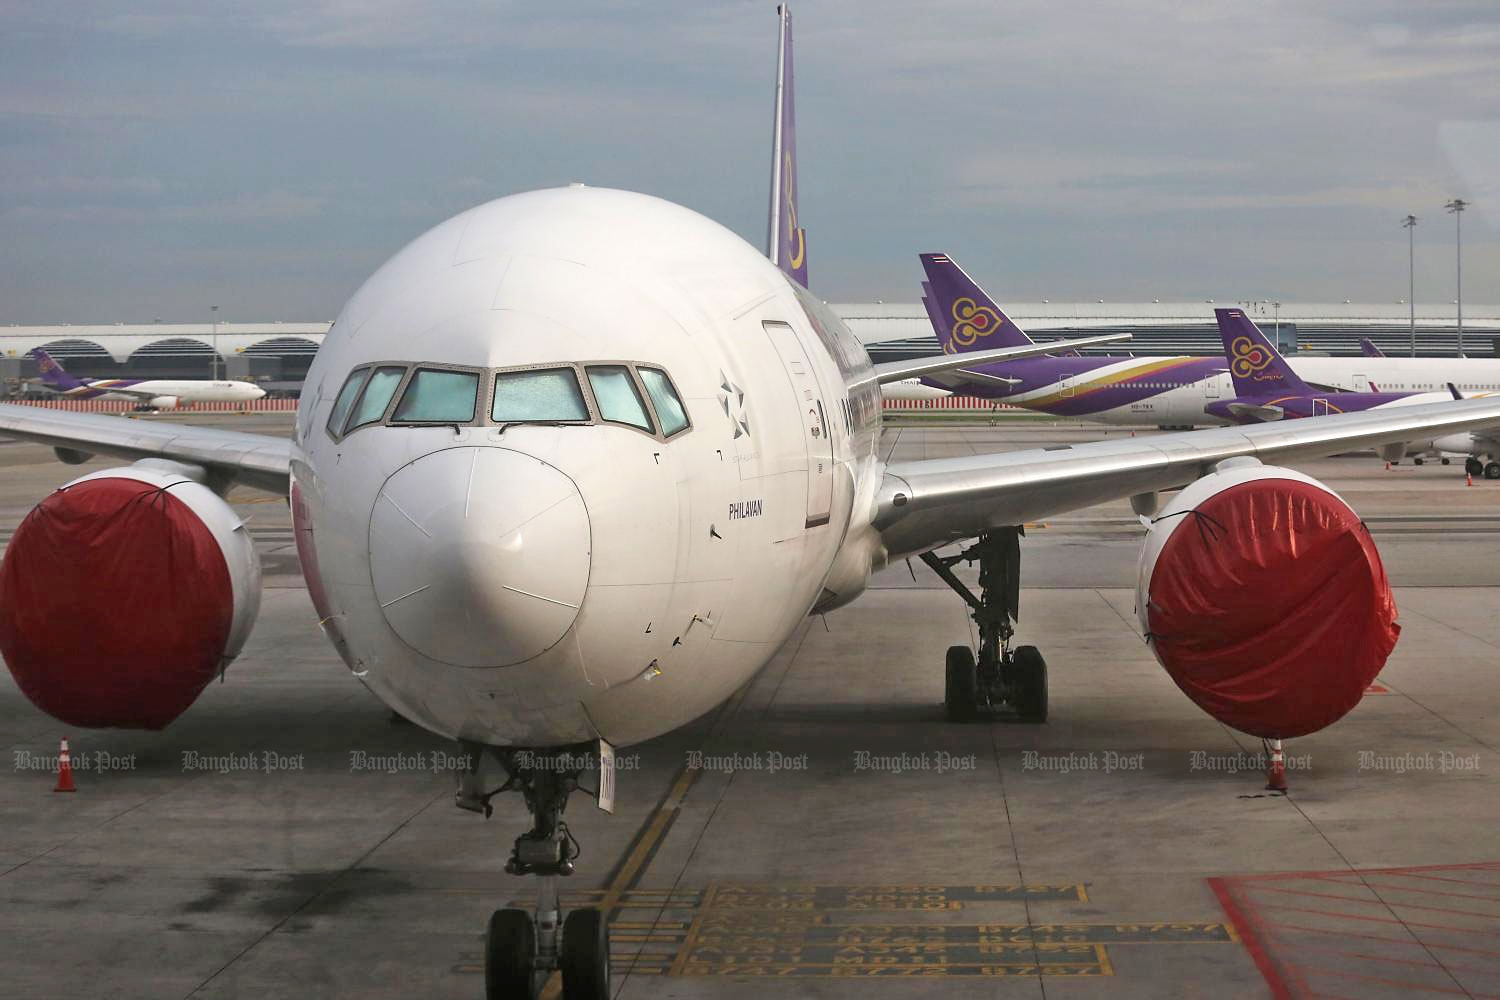 This file photo taken last month shows Thai Airways airplanes parked on the tarmac at Suvarnabhumi airport. The Central Bankruptcy Court held its first hearing on the airline's rehabilitation plan on Monday.(Photo by Wichan Charoenkiatpakul)